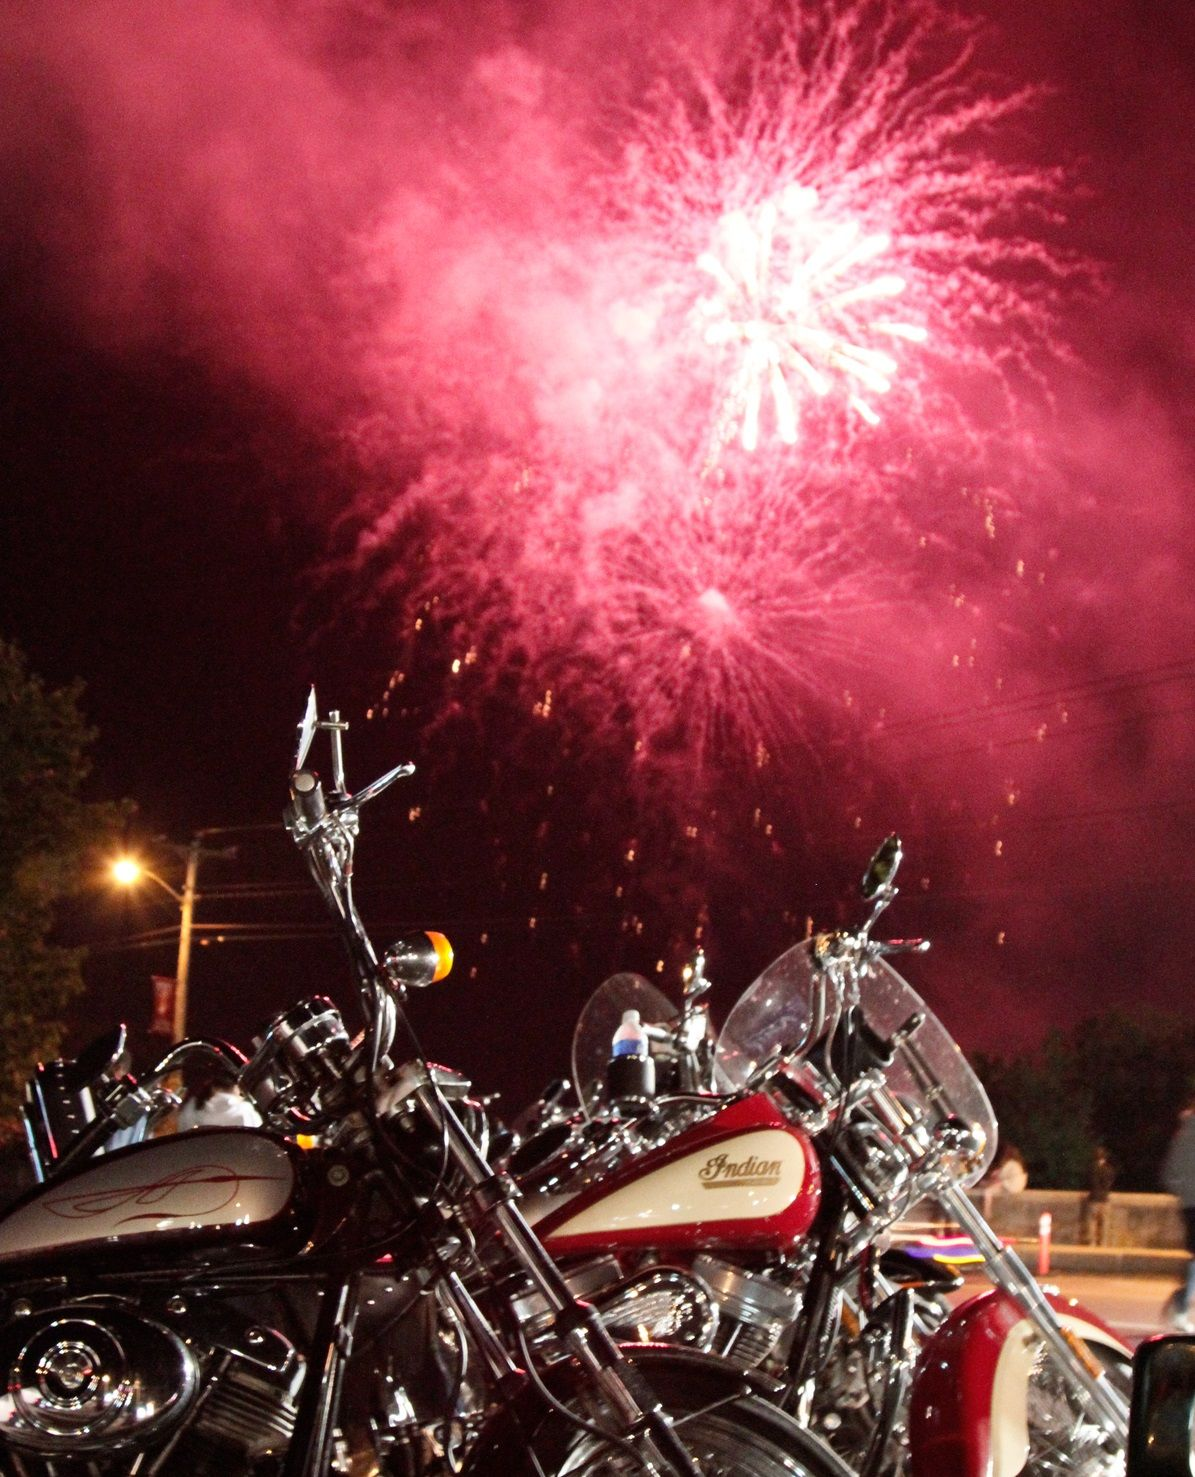 4th Of July Fireworks And Motorcycles Stars Amp Stripes